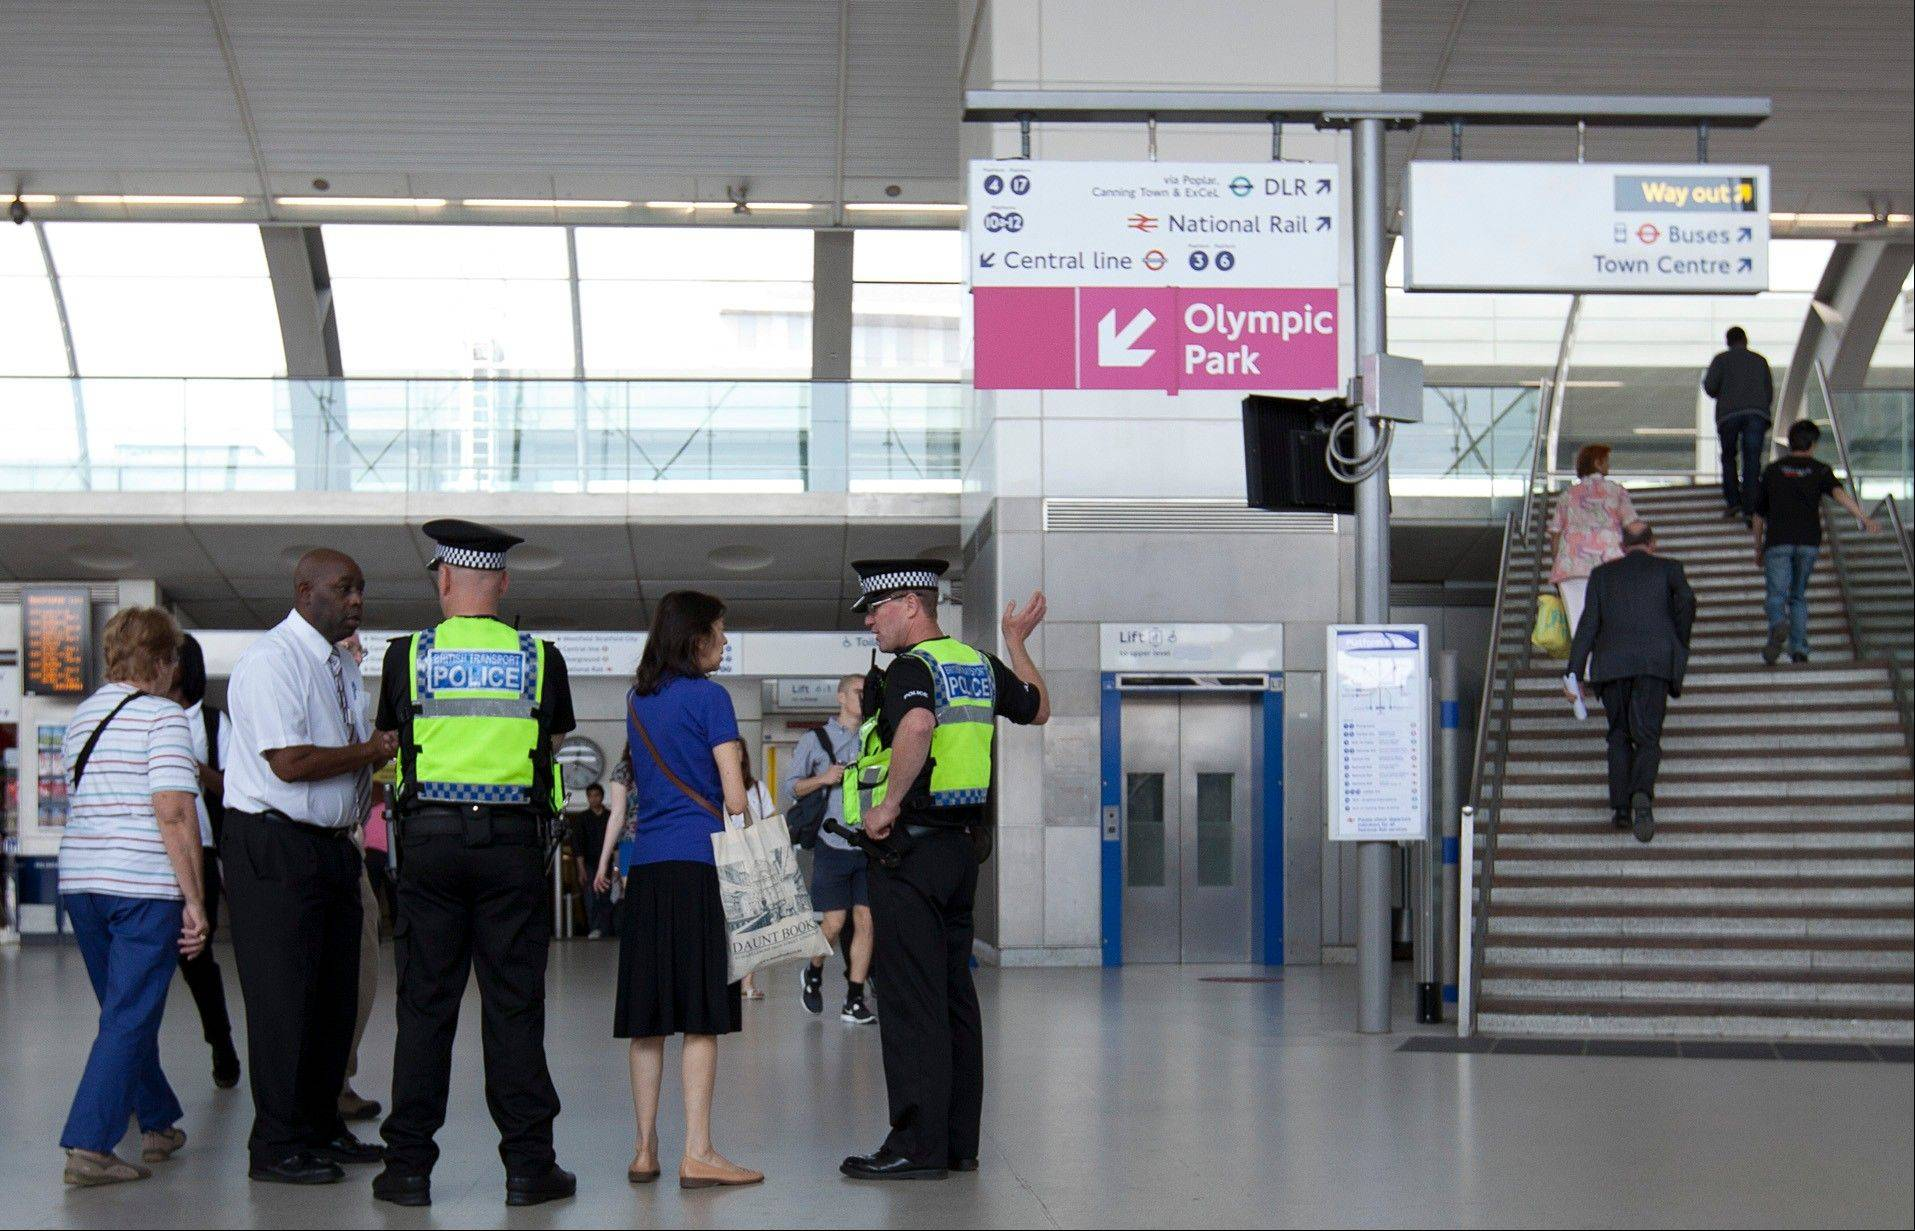 Police officers direct passengers beneath signs pointing to the Olympic Park, which are seen at the Stratford underground station as final preparations are made ahead of the London 2012 Olympic Games in east London.